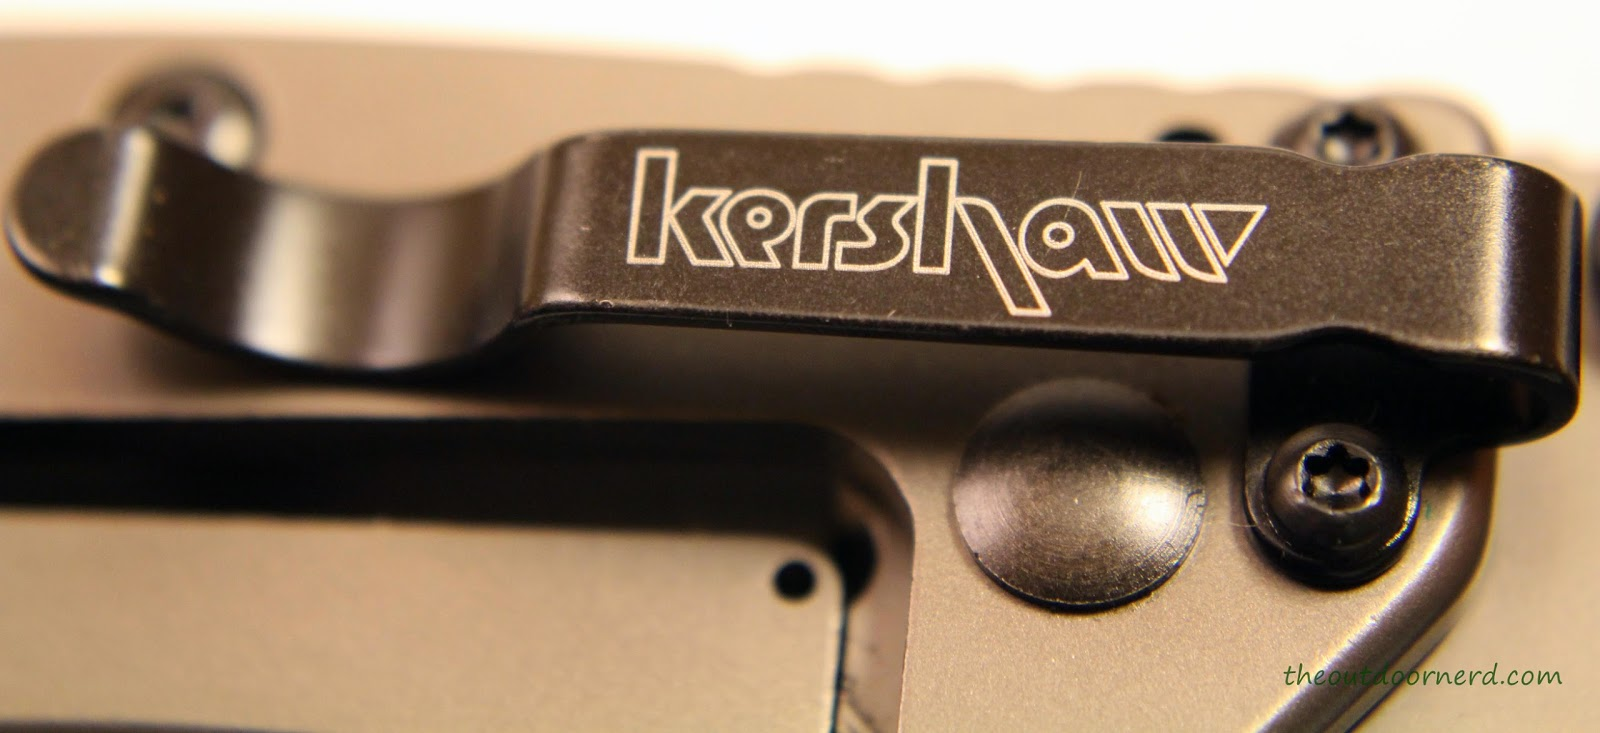 Kershaw Cryo EDC Pocket Knife: View Of Clip 1